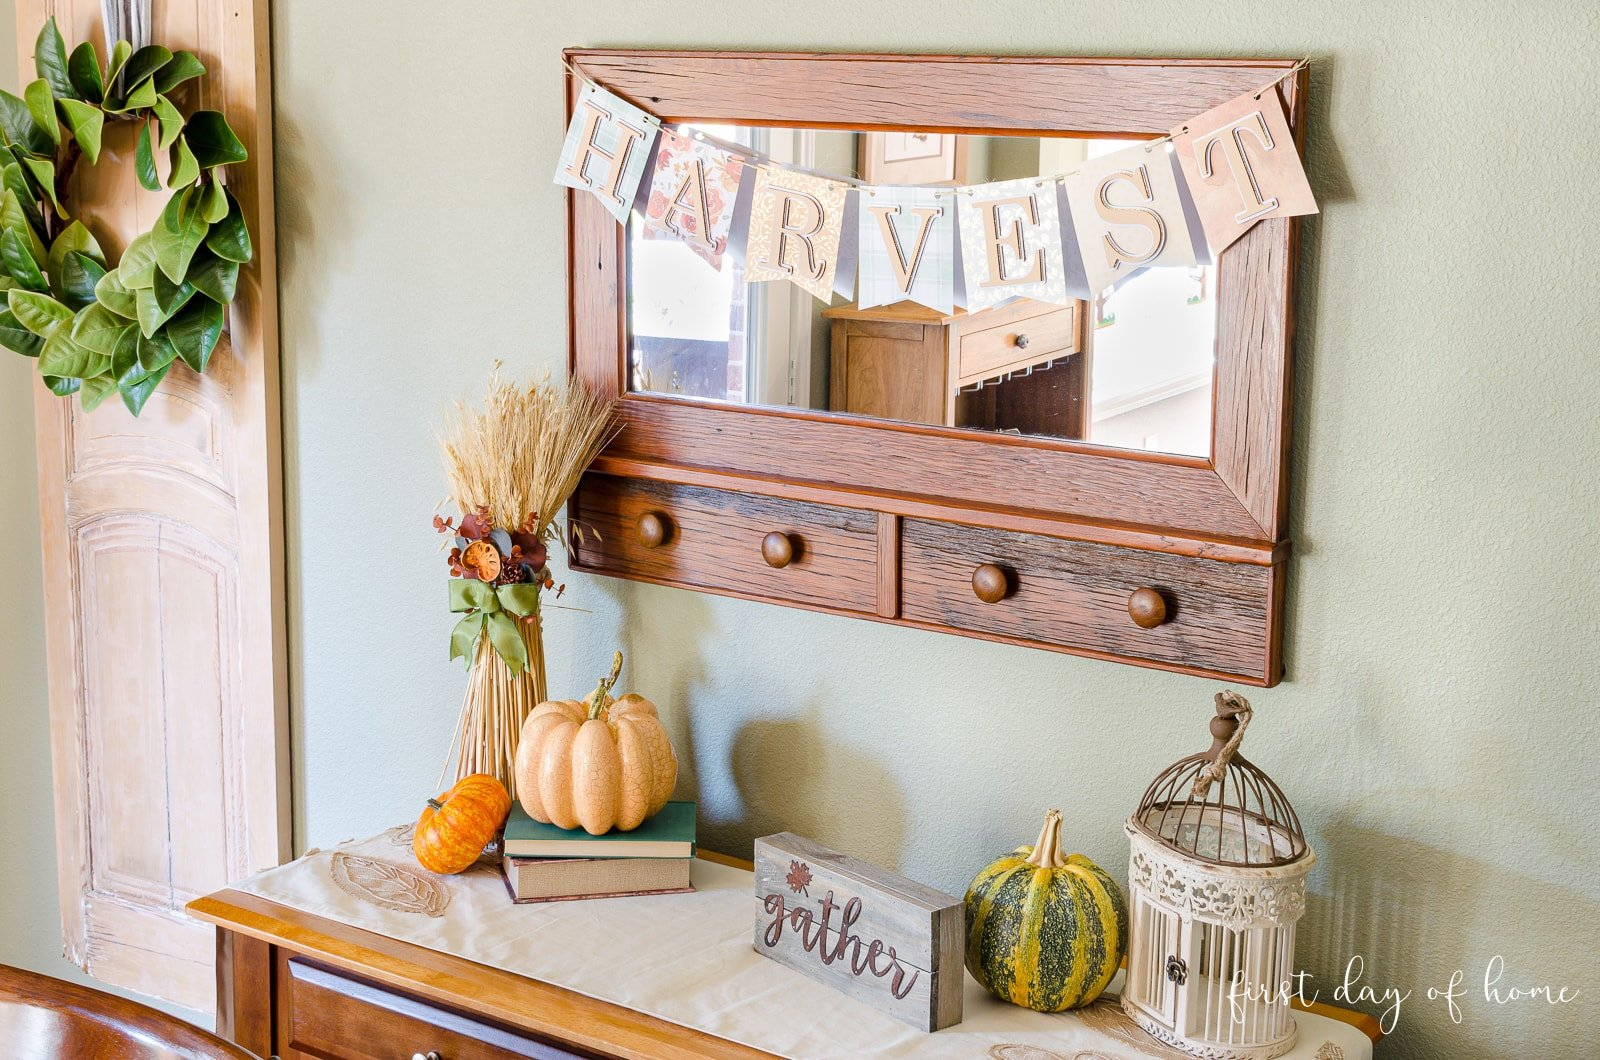 DIY harvest pennant banner on breakfast room mirror above sideboard with fall decor